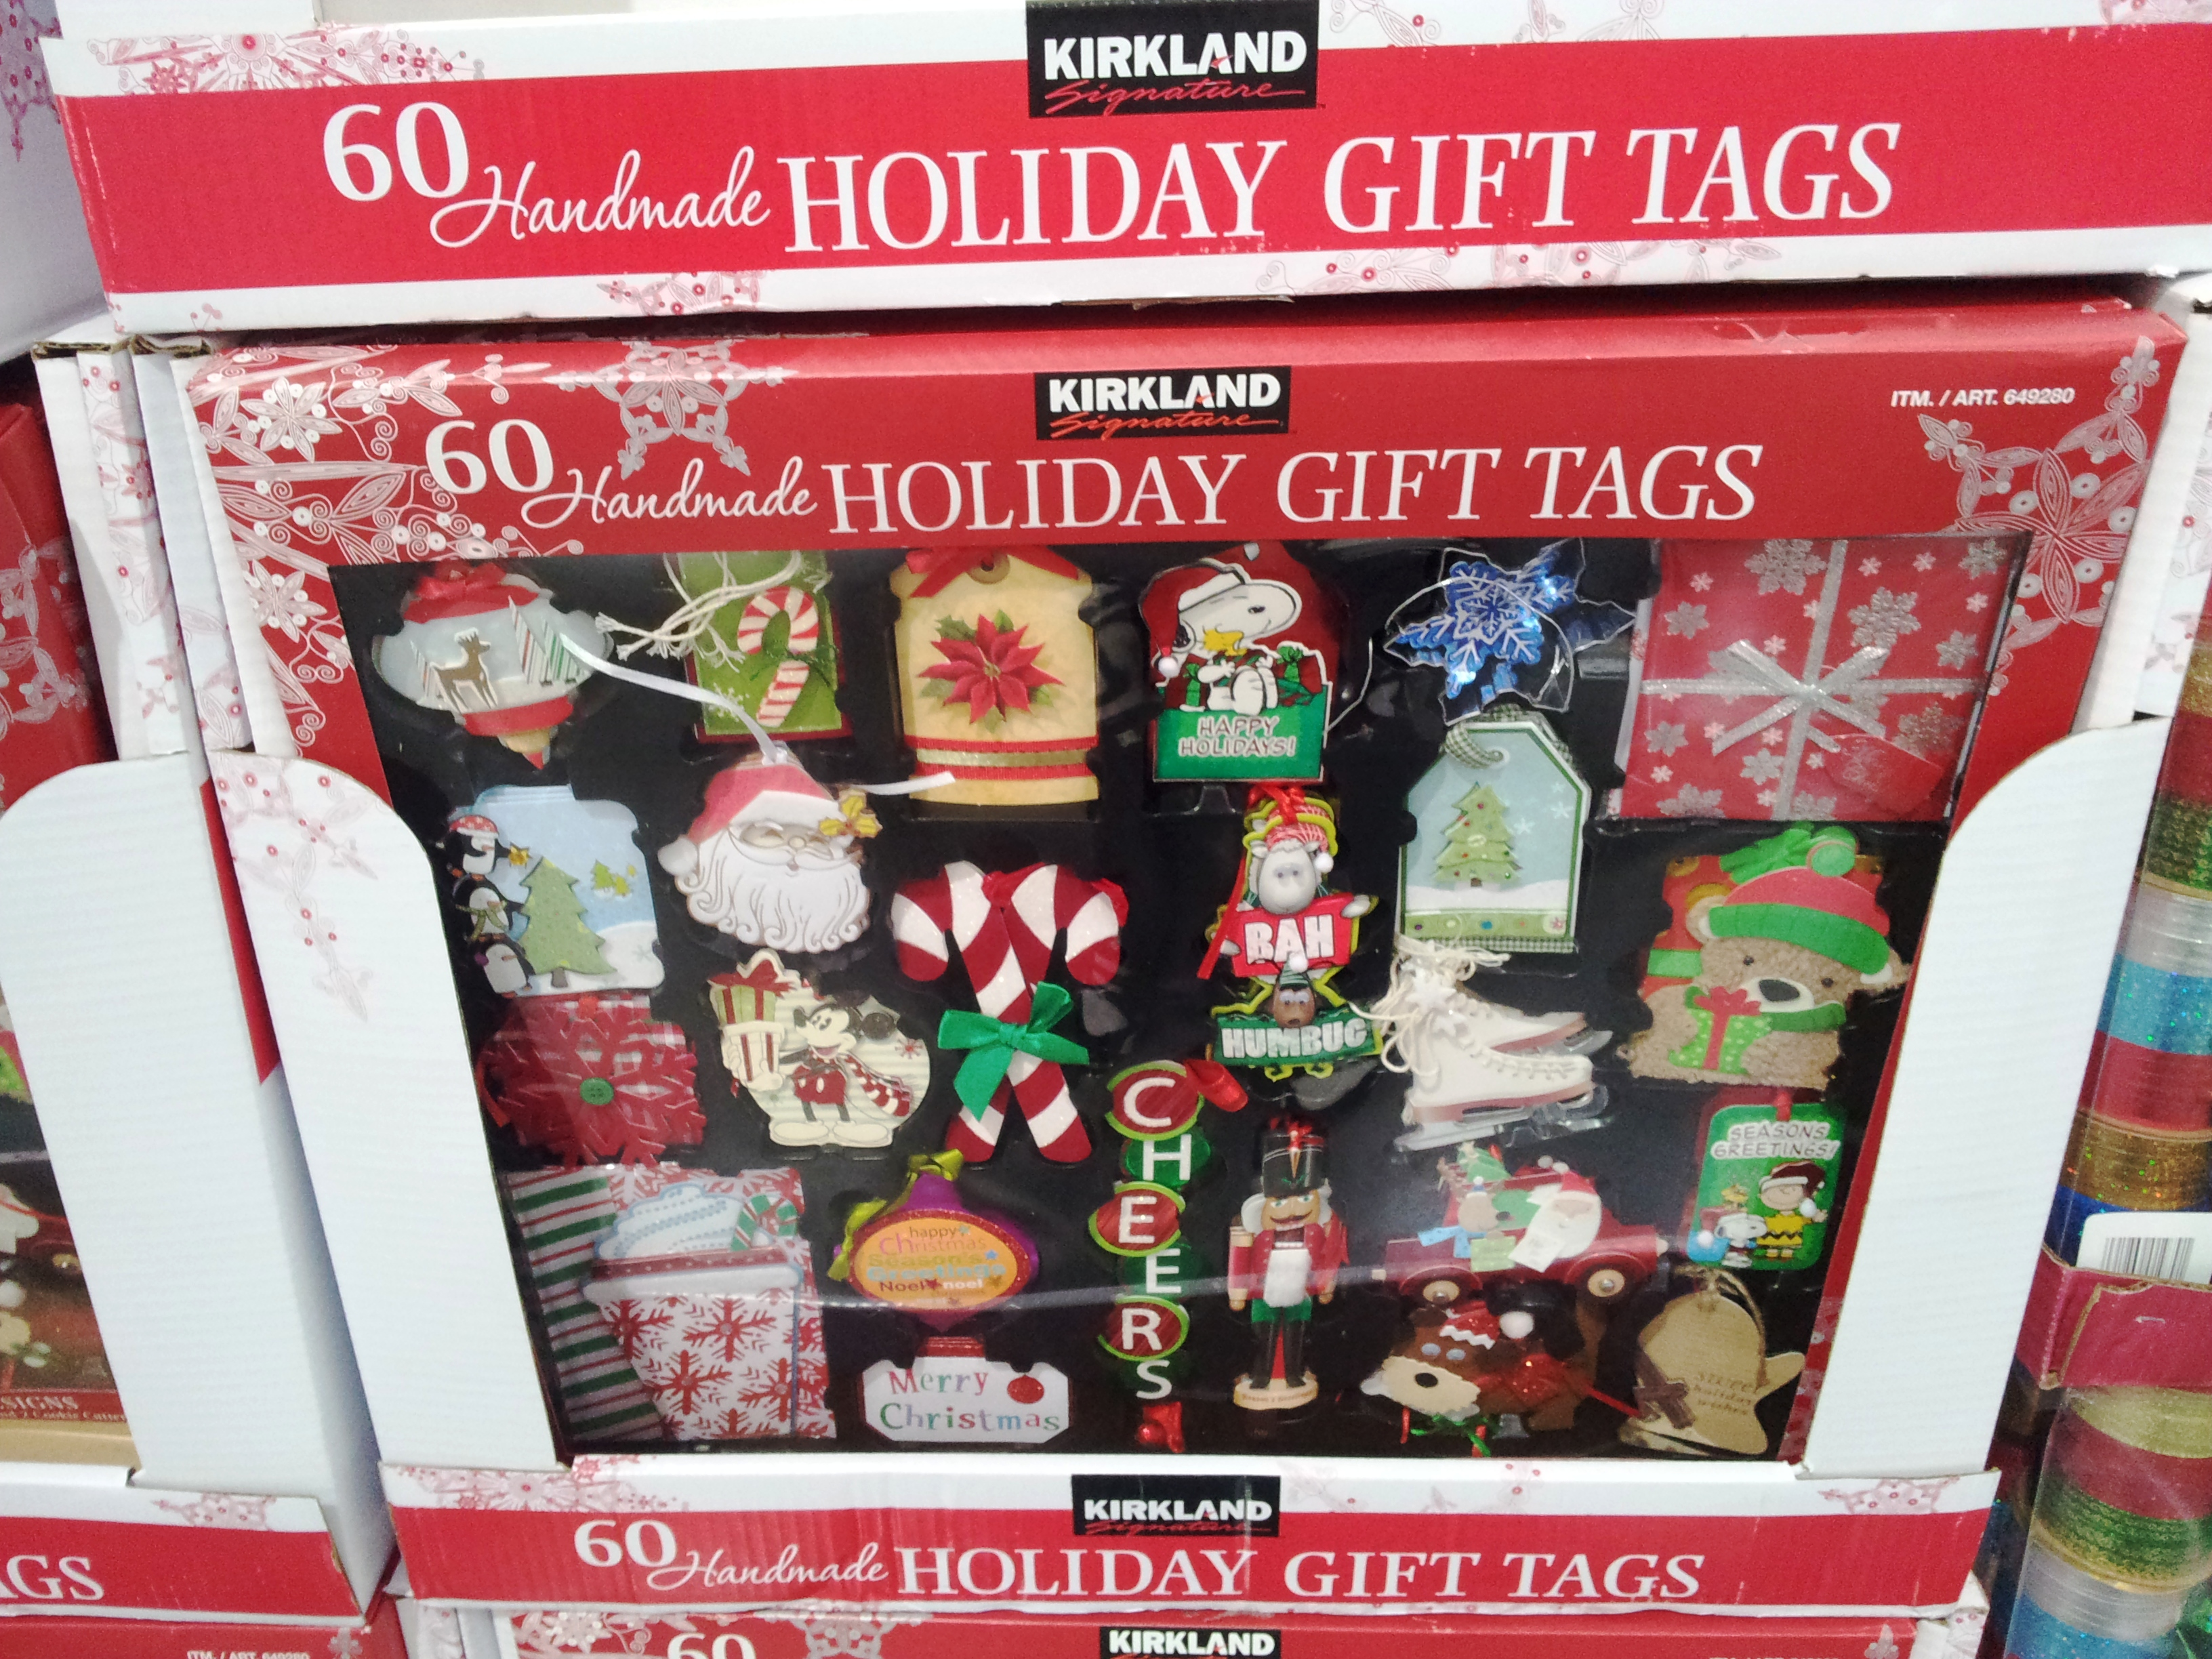 12 Days of Costco Christmas - Day 10 - Loaded Trolley